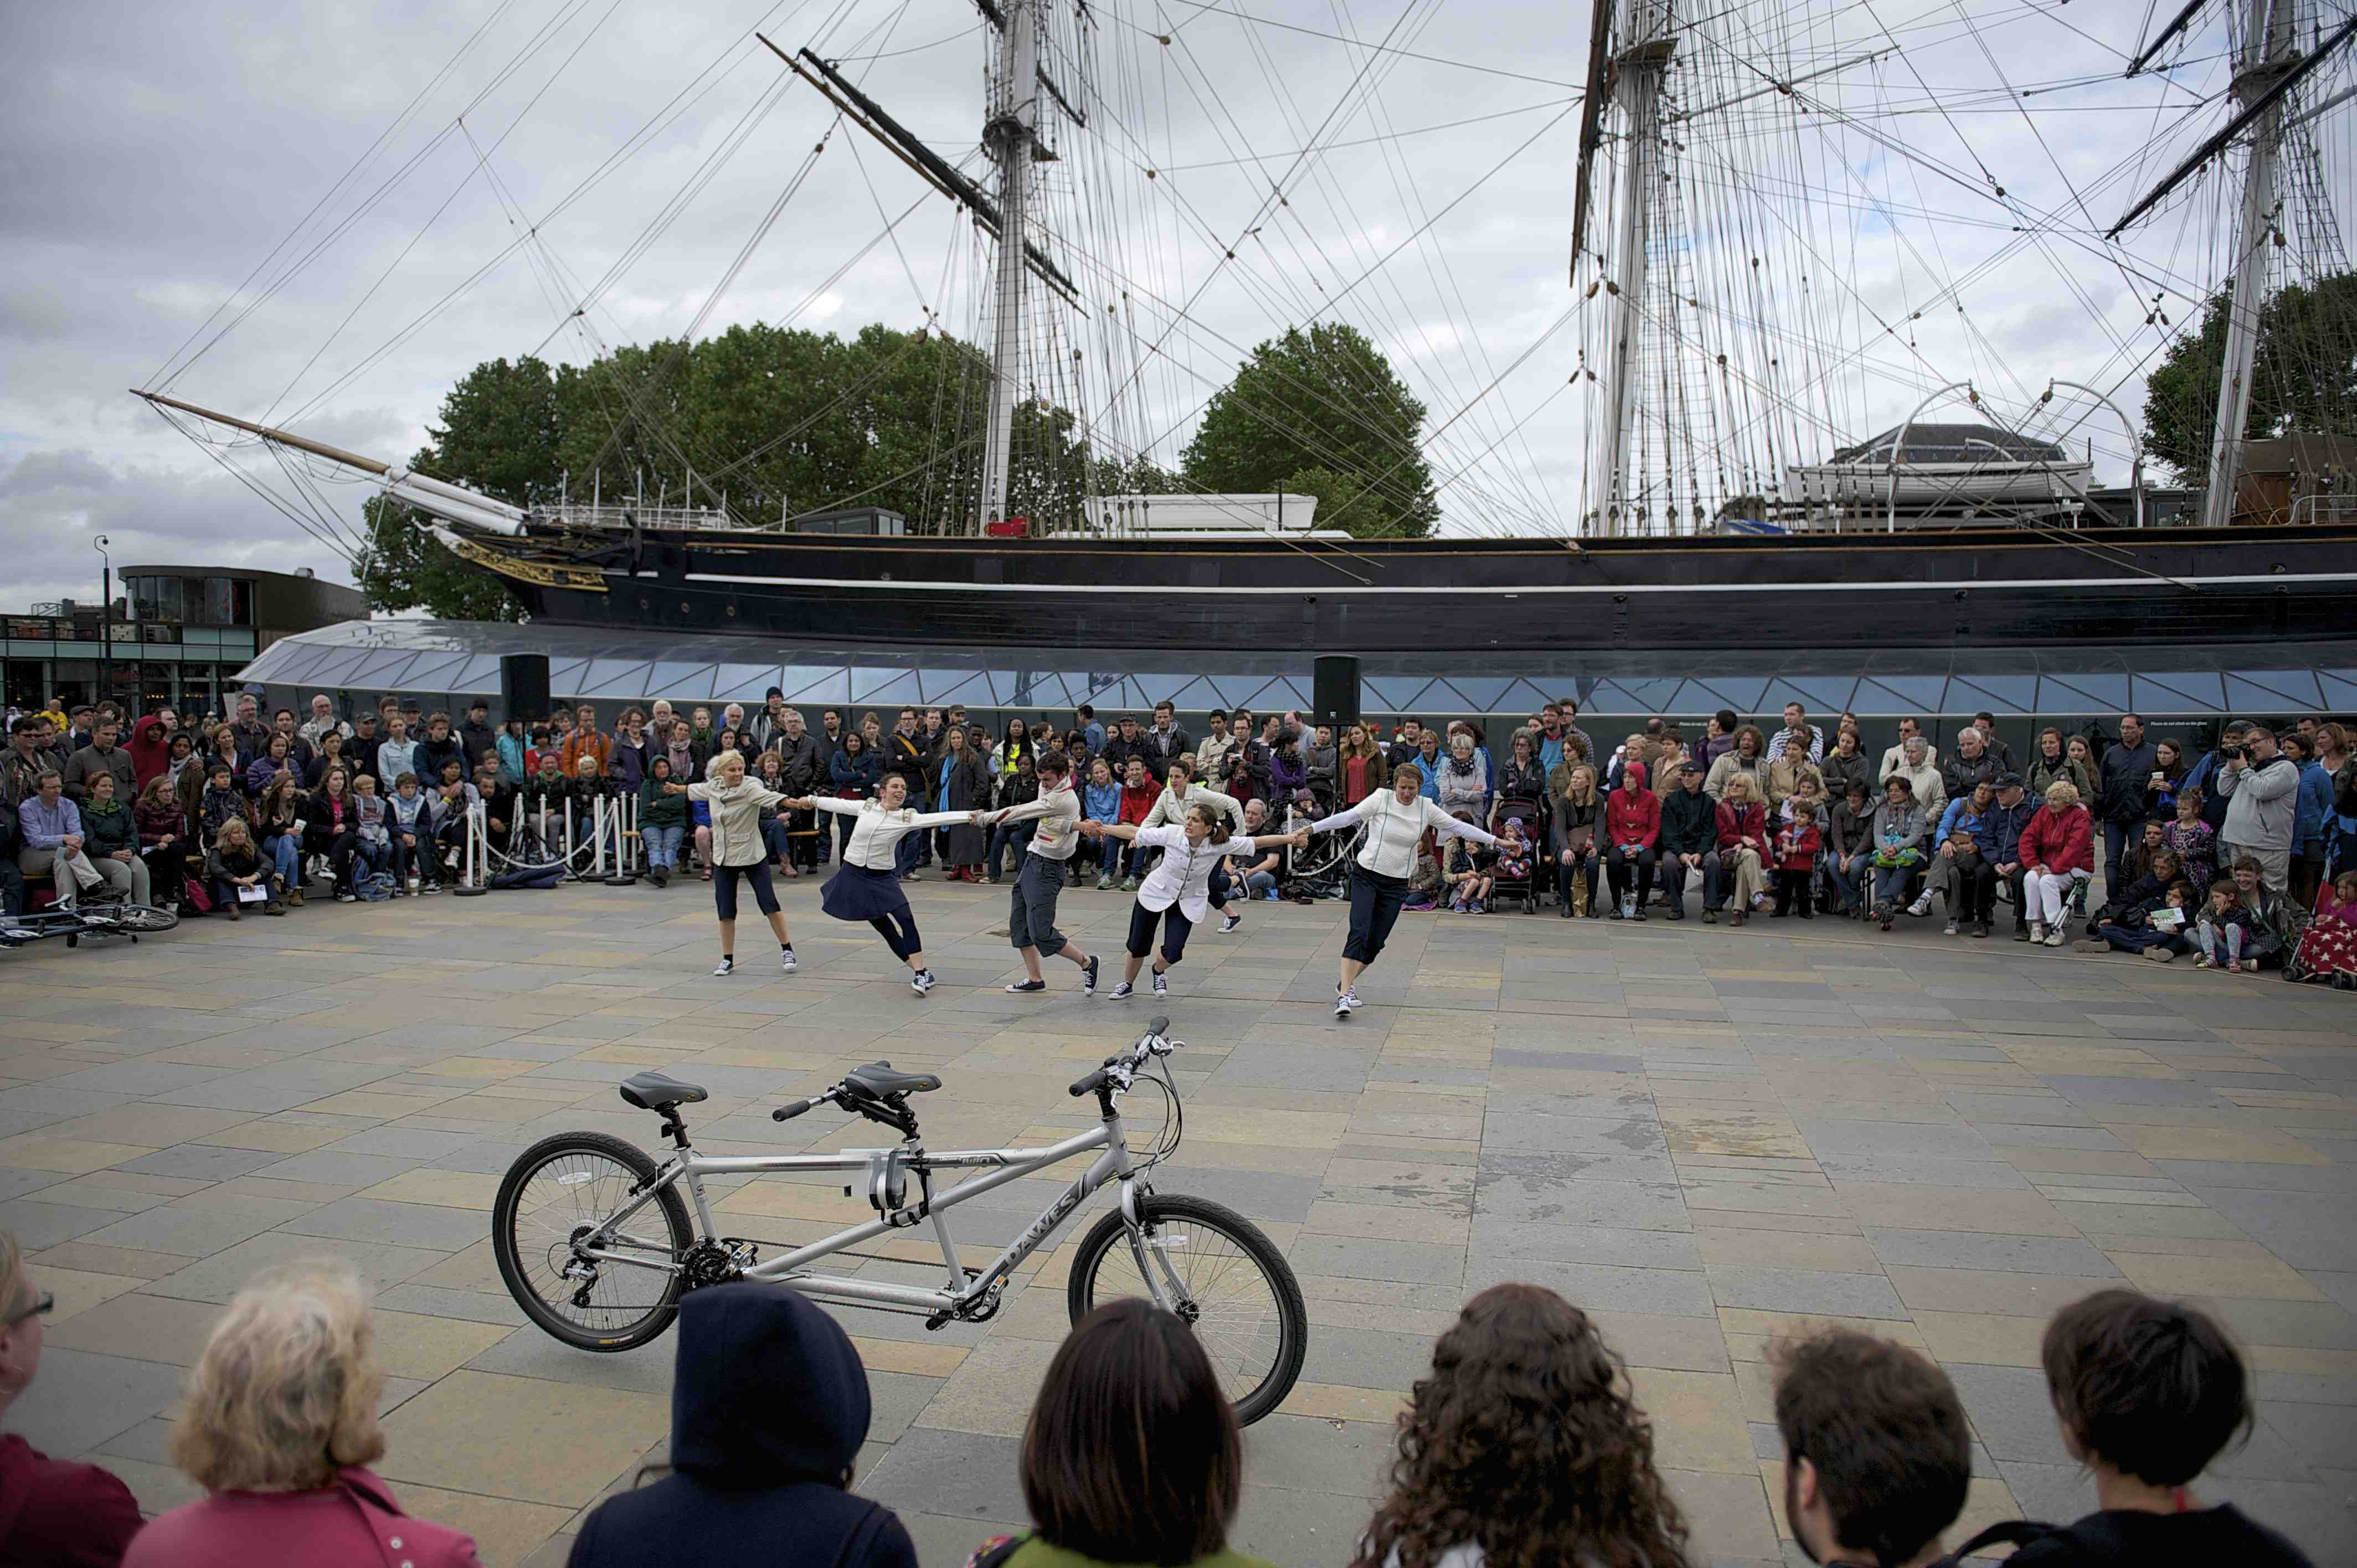 Performers in a line pulling Frustration, surrounded by a large crowd in front of the Cutty Sark